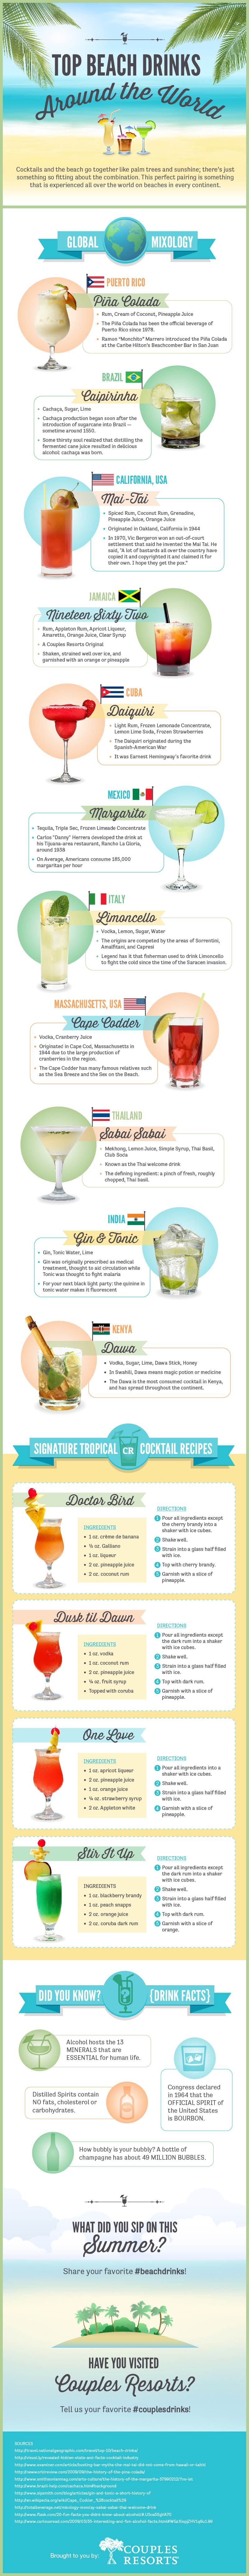 Top Beach Drinks Around the World